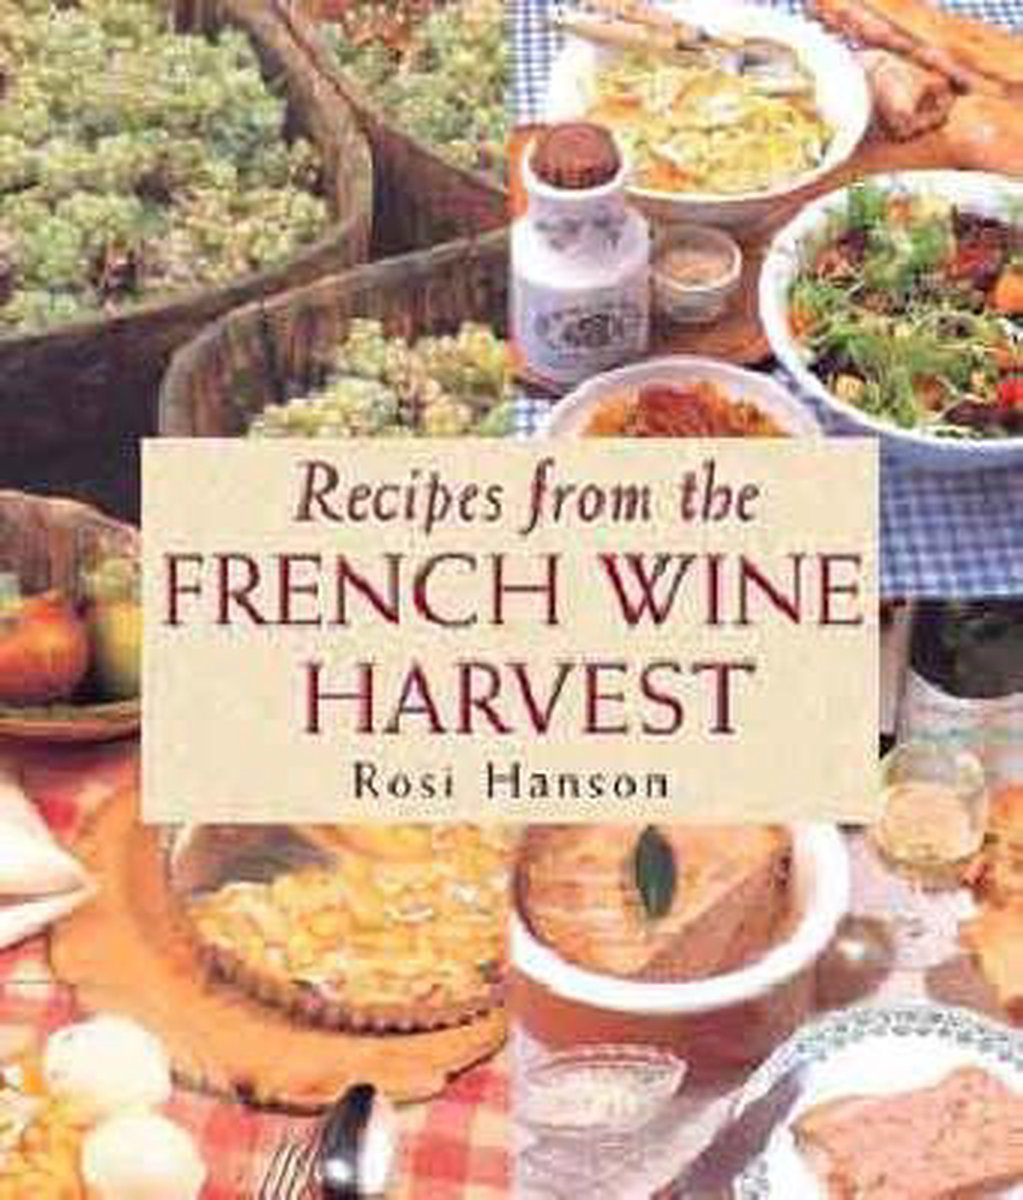 Recipes from the French Wine Harvest